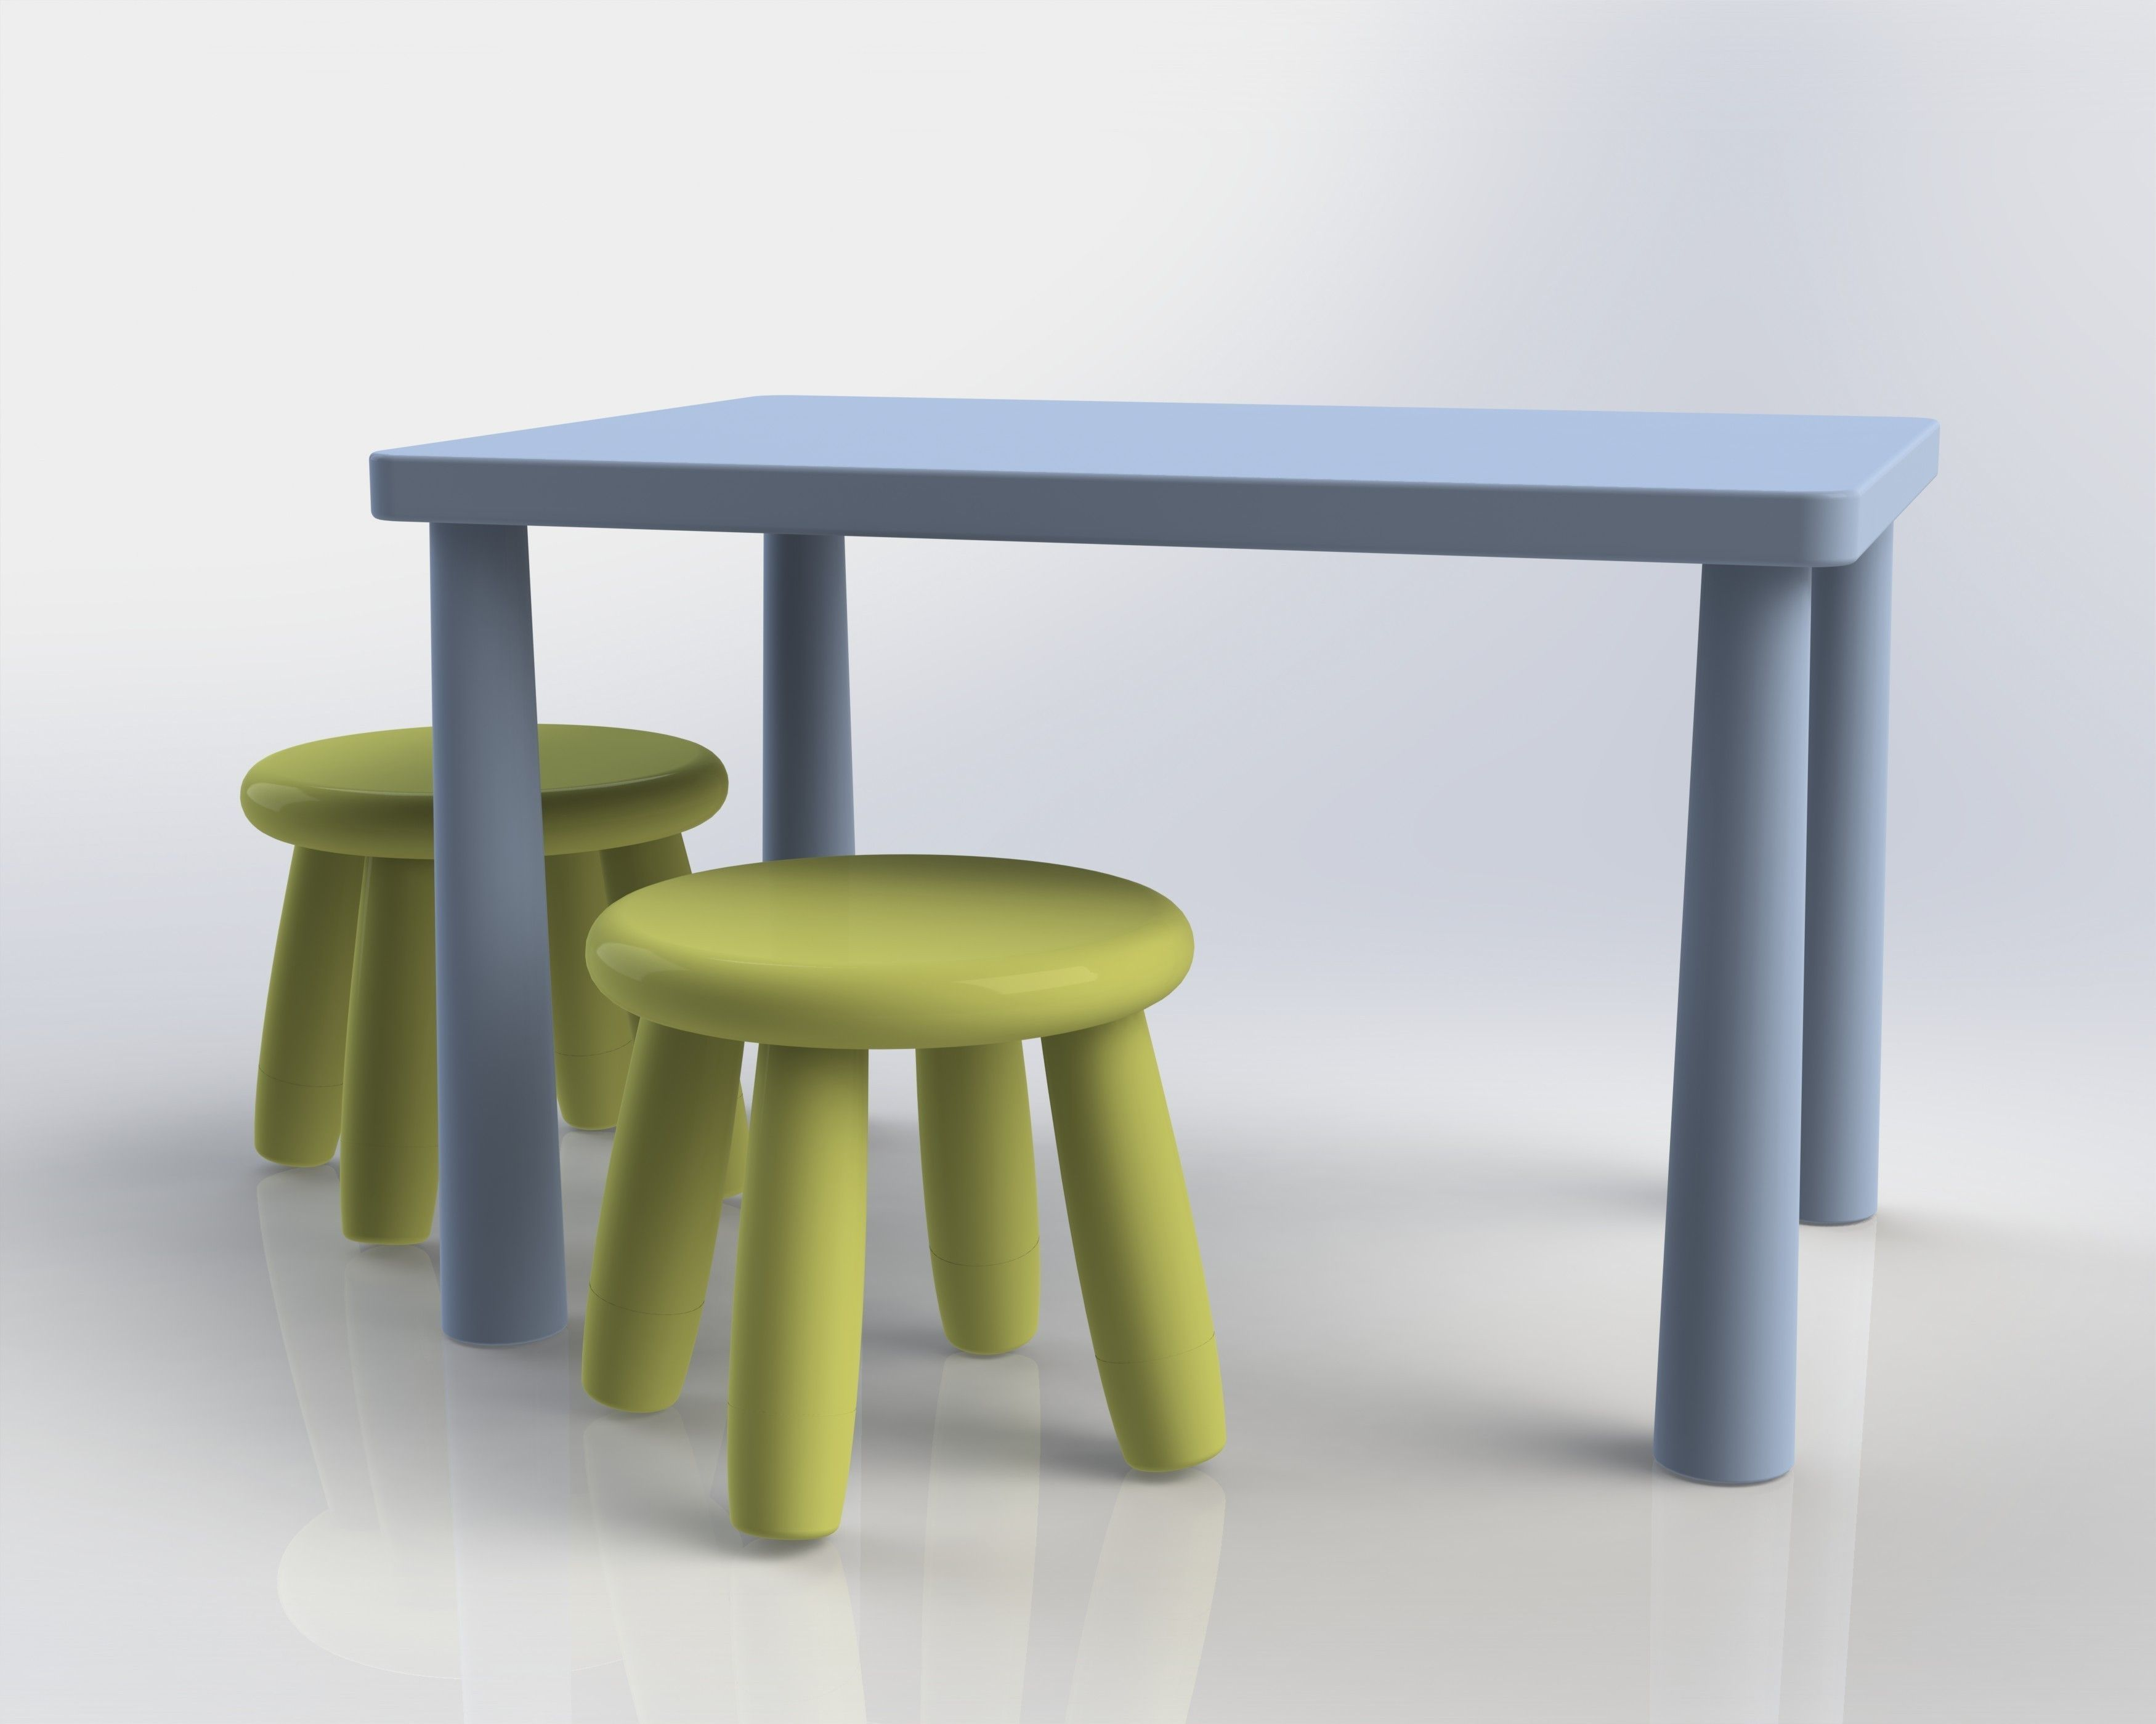 Ikea Mammut Chairs And Table Free 3d Model Sldprt Sldasm